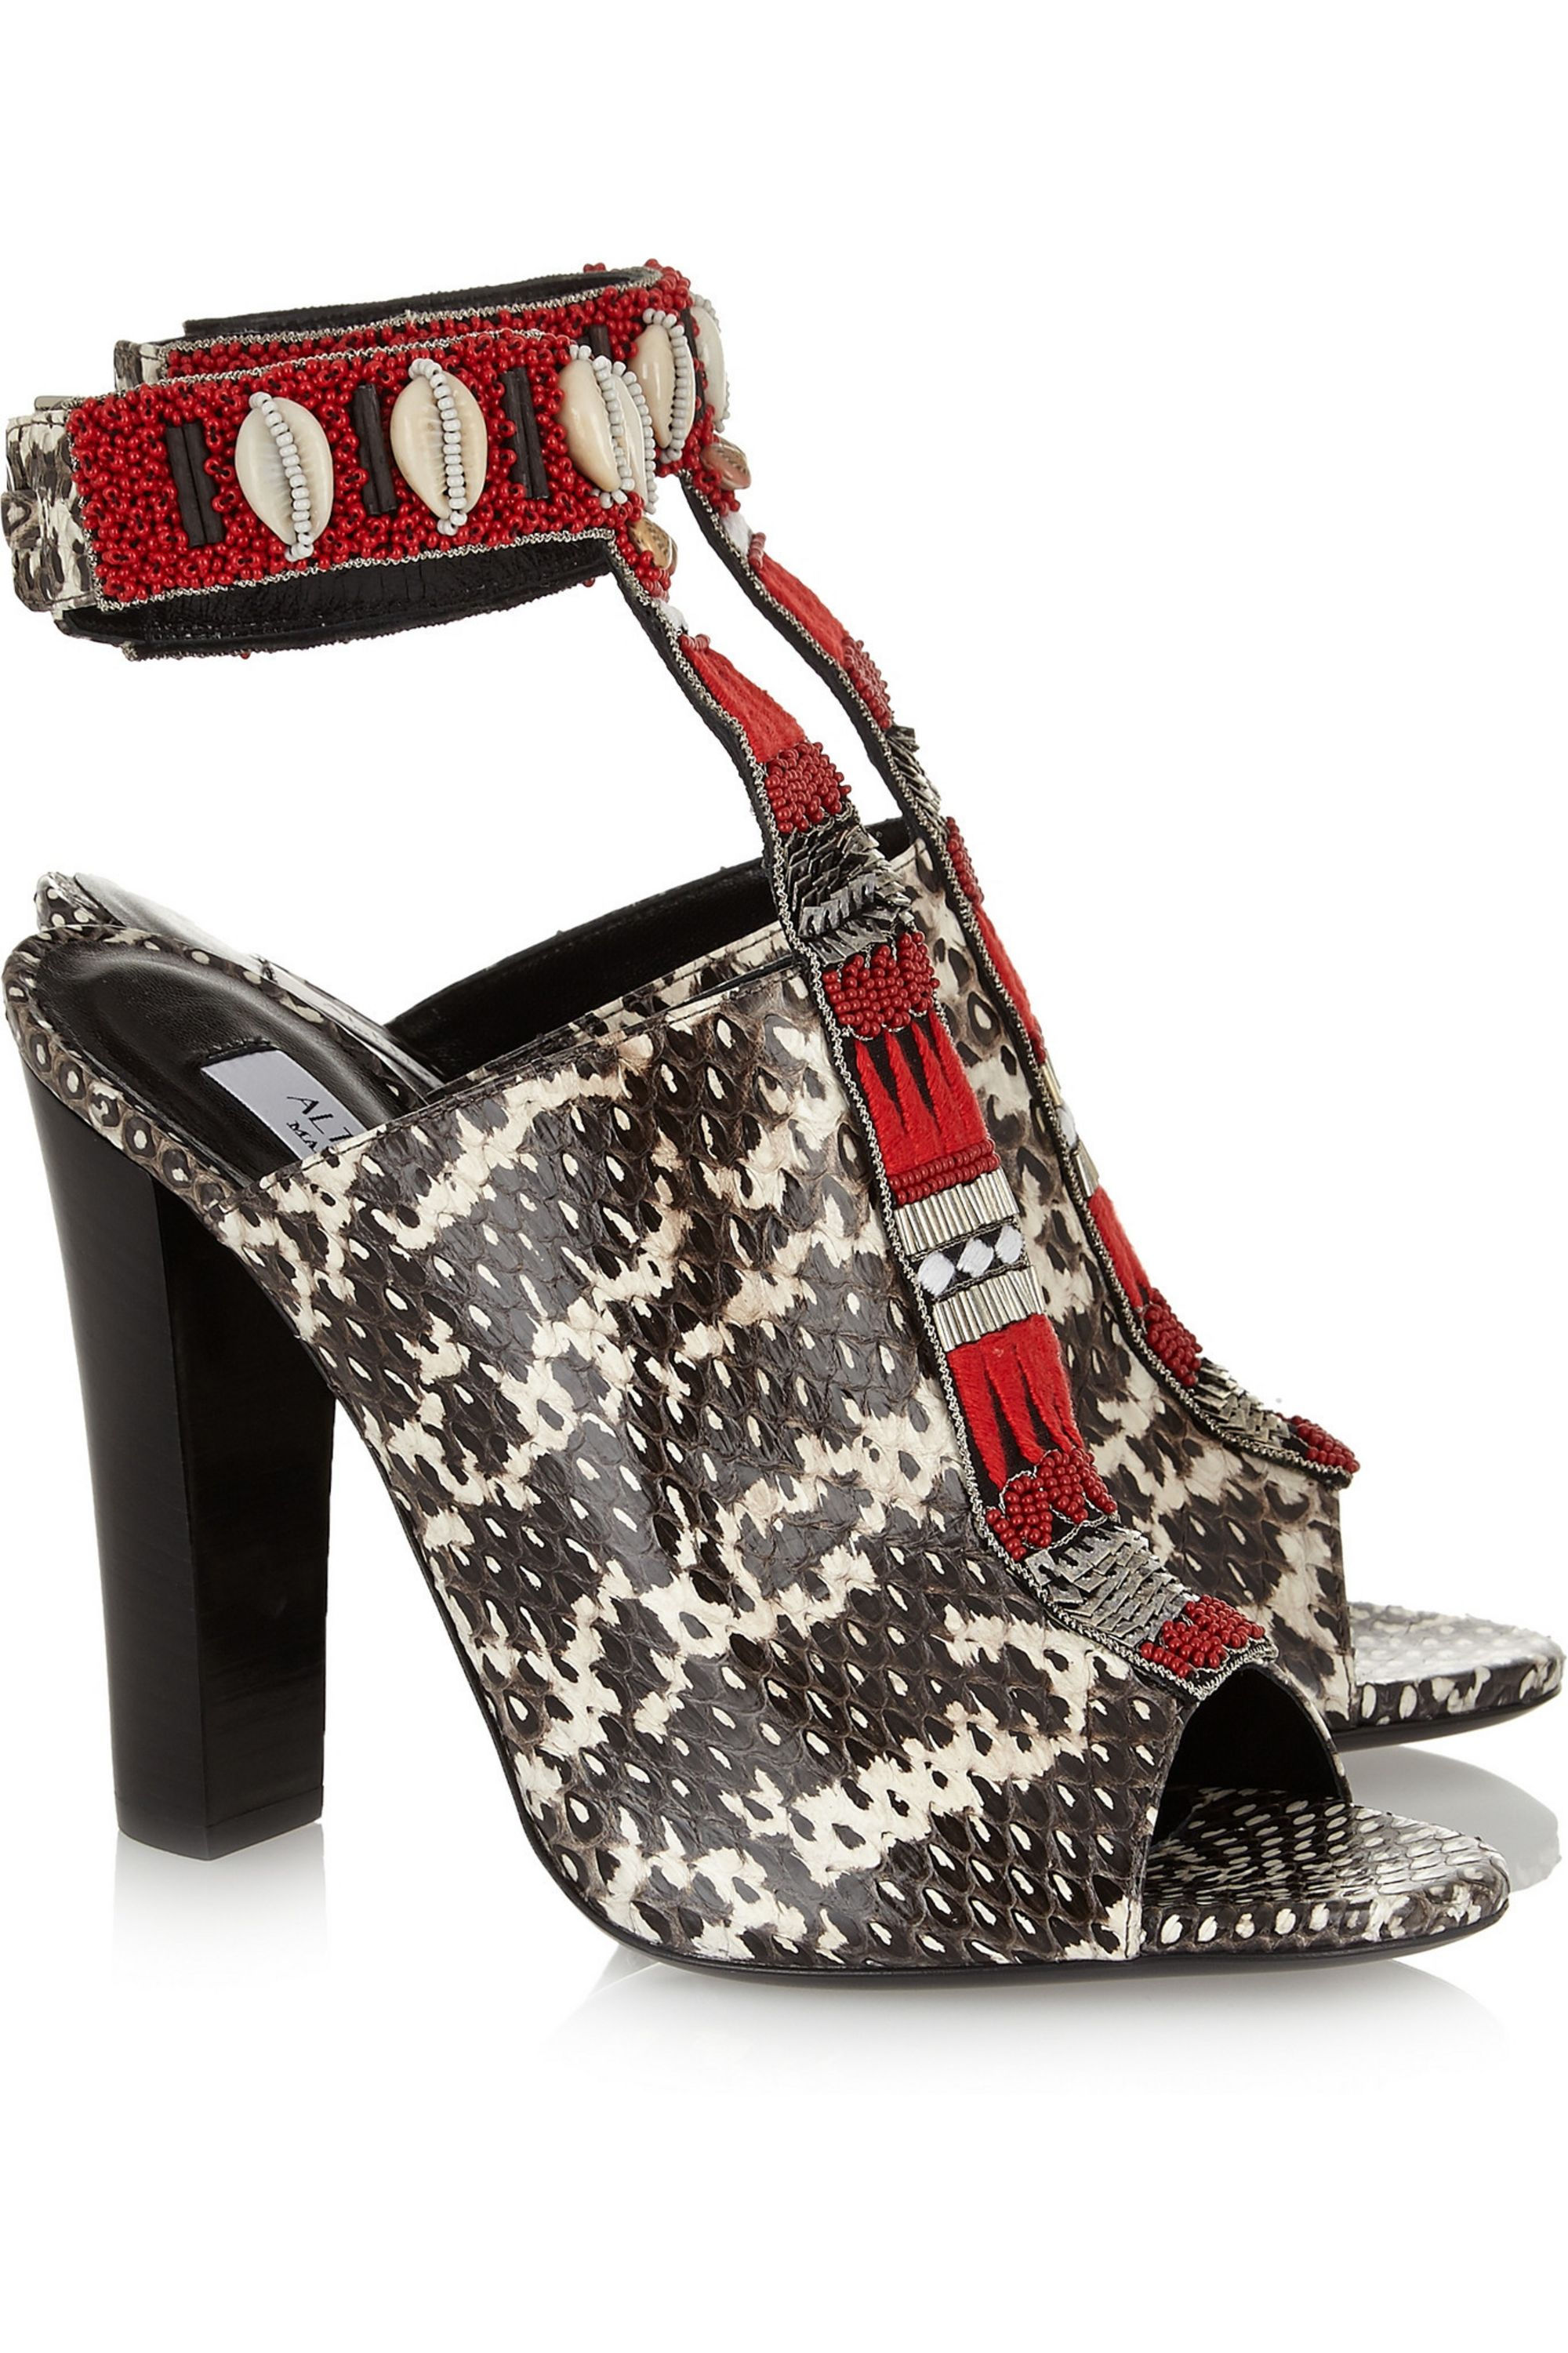 Altuzarra Zephyr embellished watersnake sandals